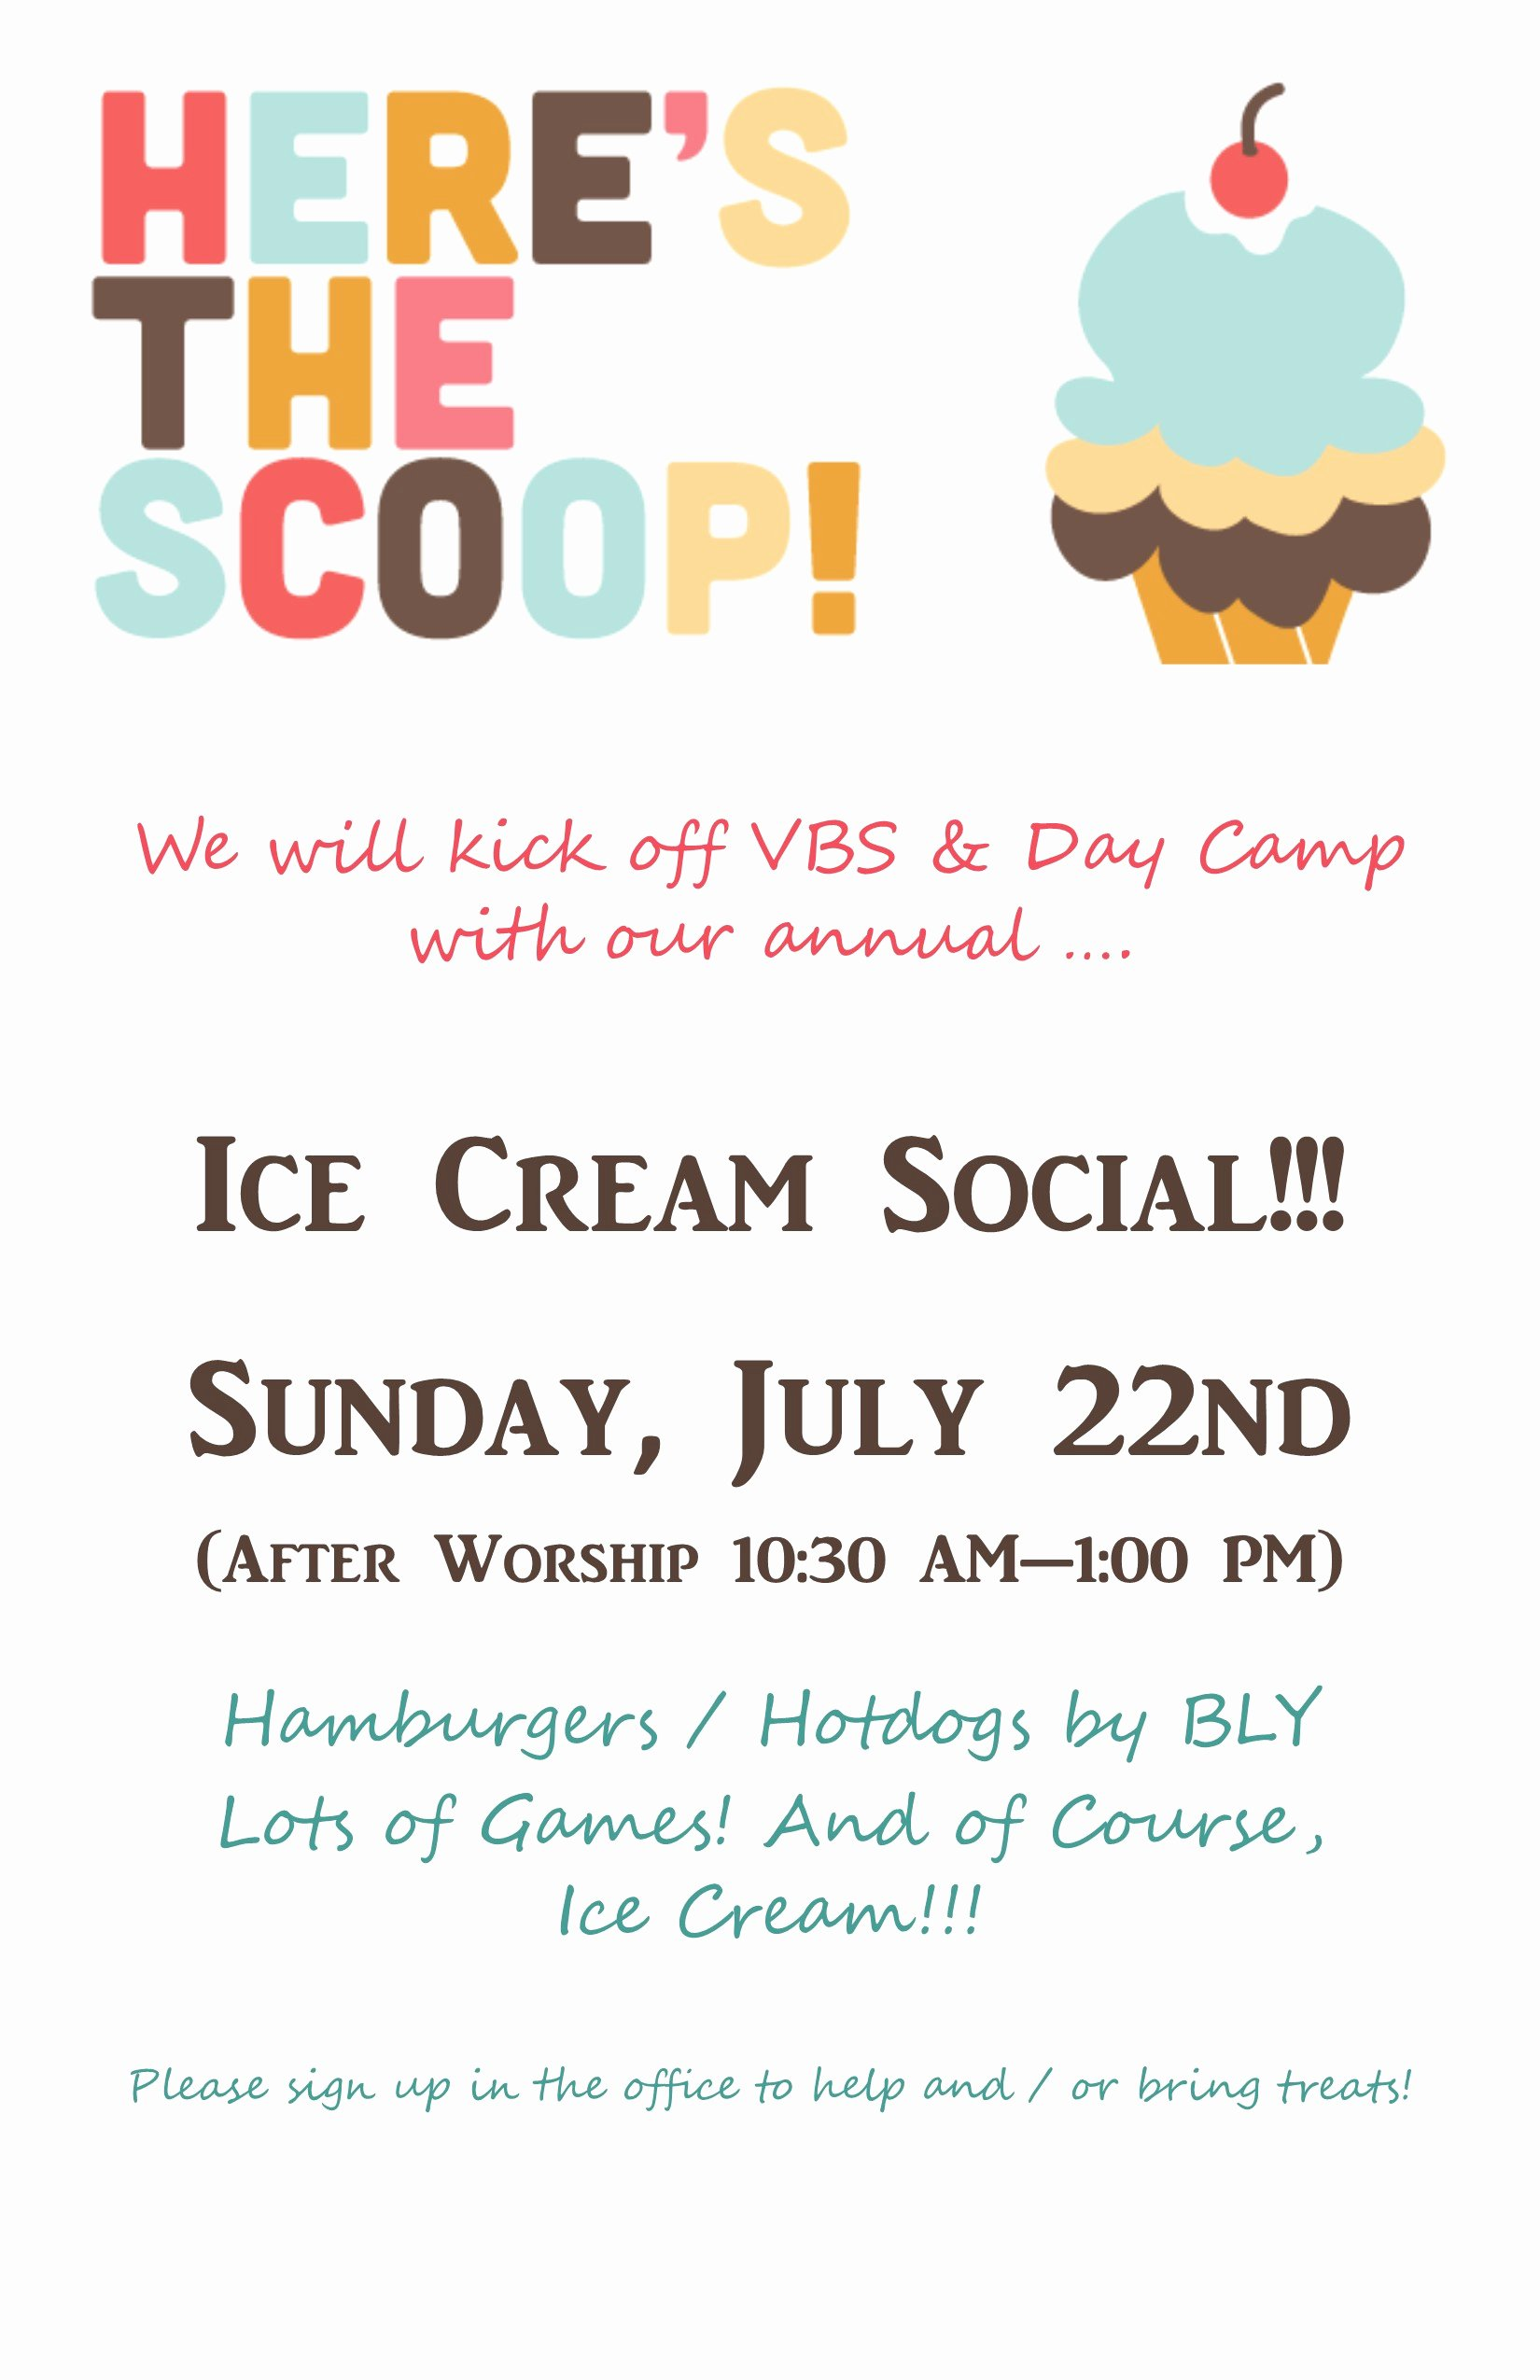 Ice Cream social Flyer Best Of Ice Cream social